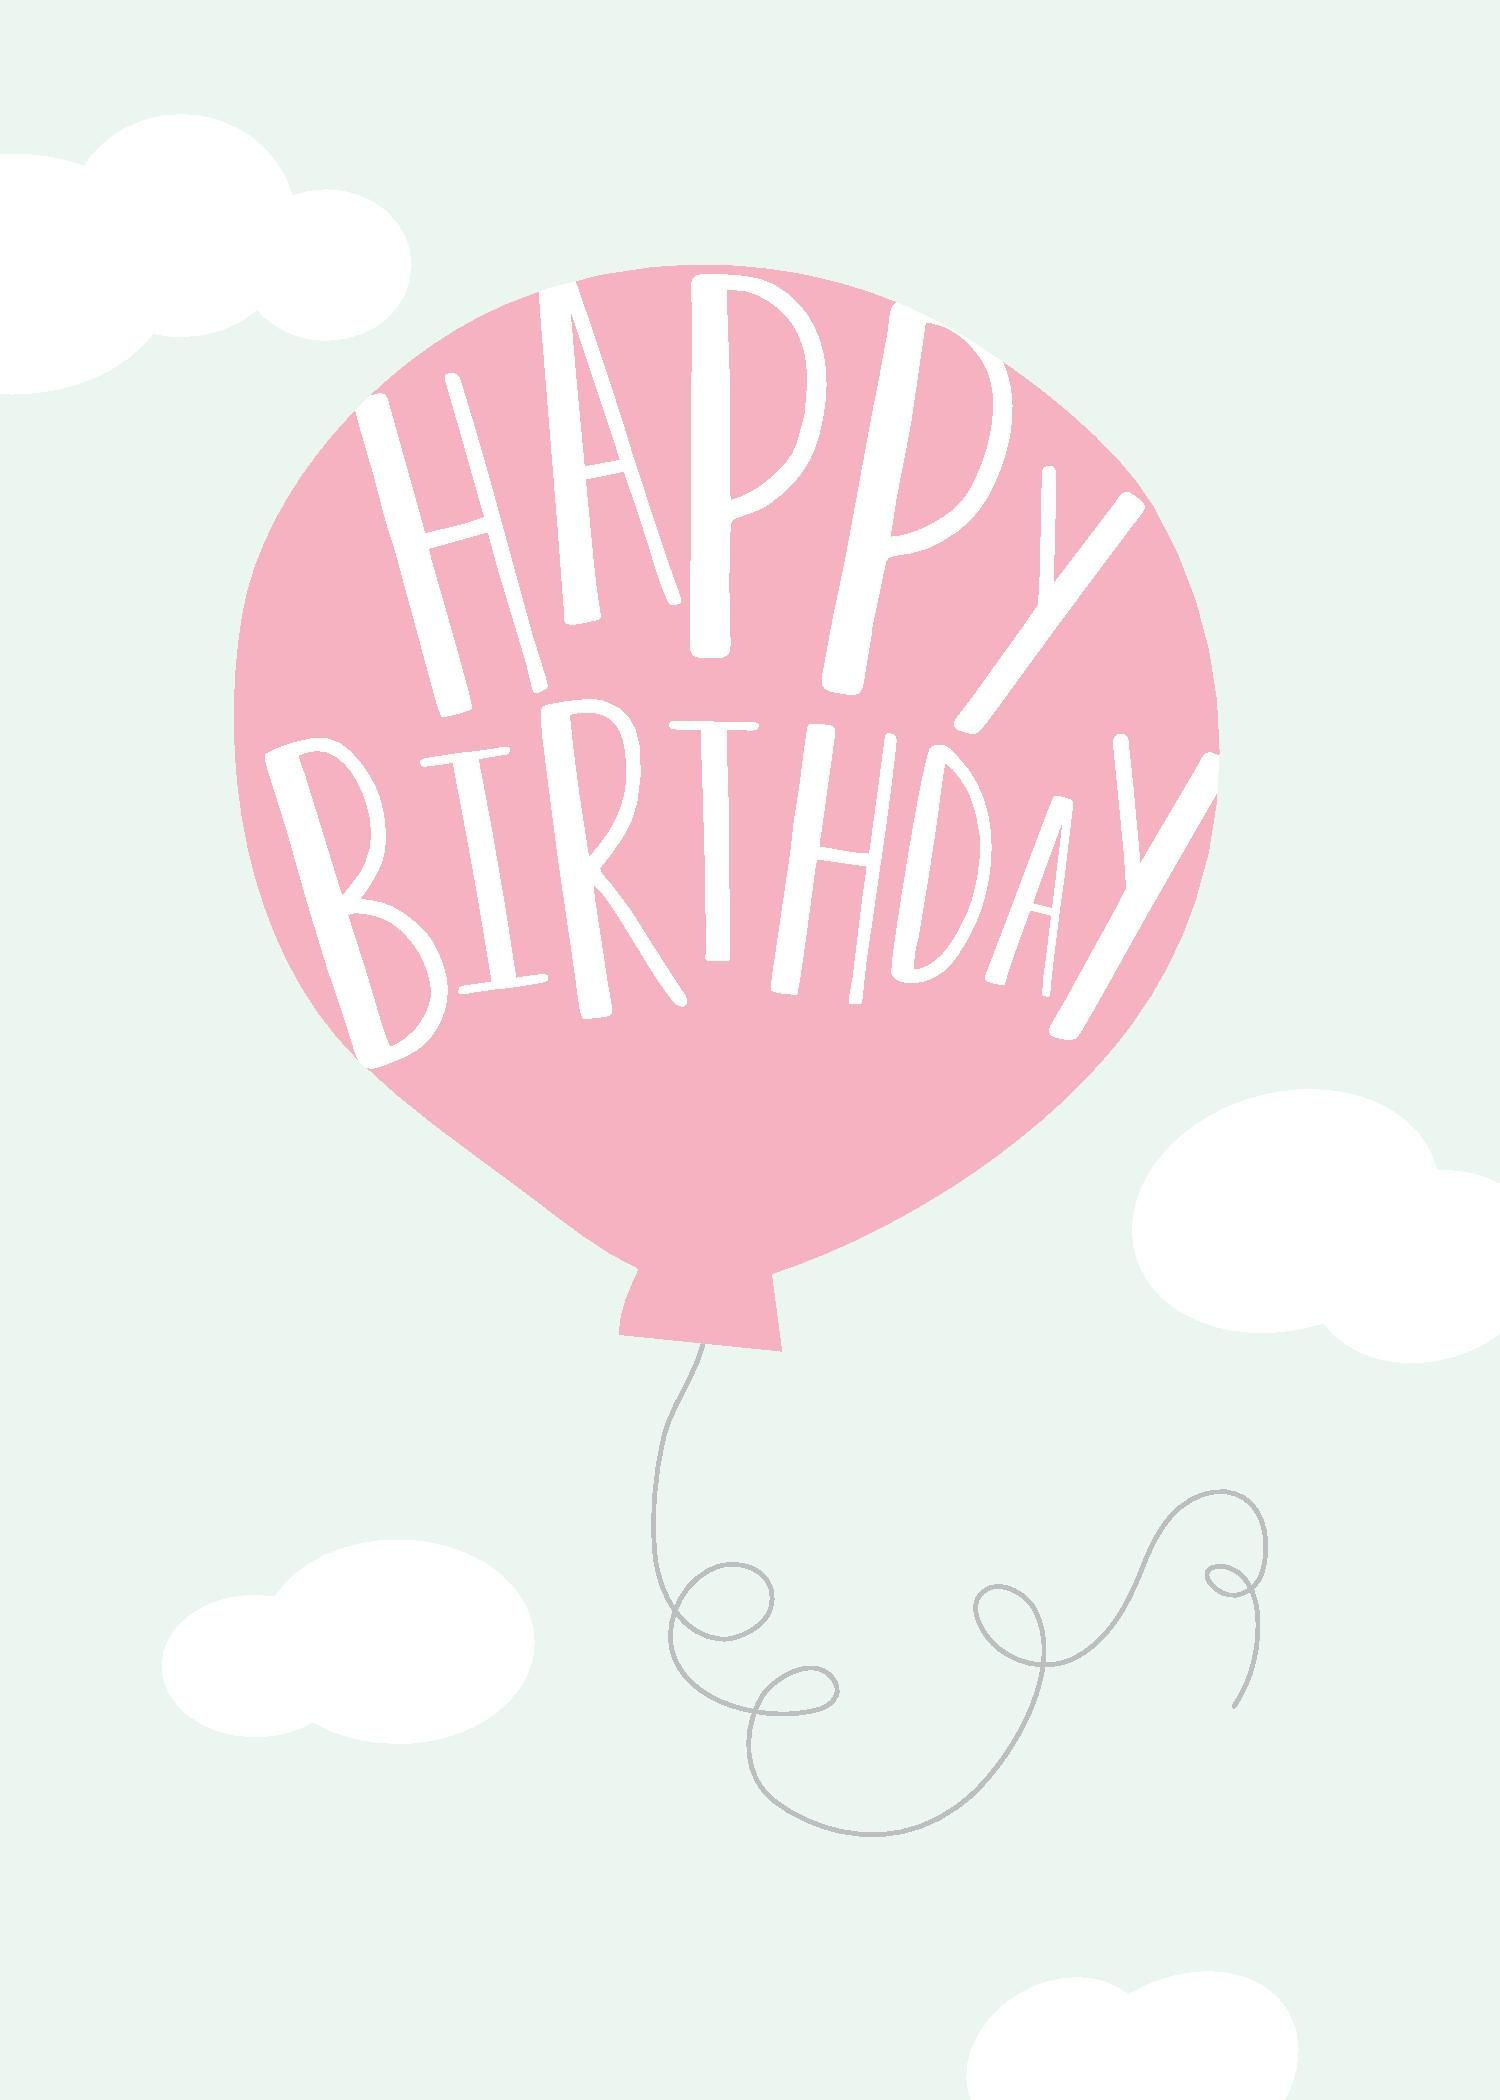 Happy birthday greeting card with pink baloon design by print happy birthday greeting card with pink baloon design by print smitten m4hsunfo